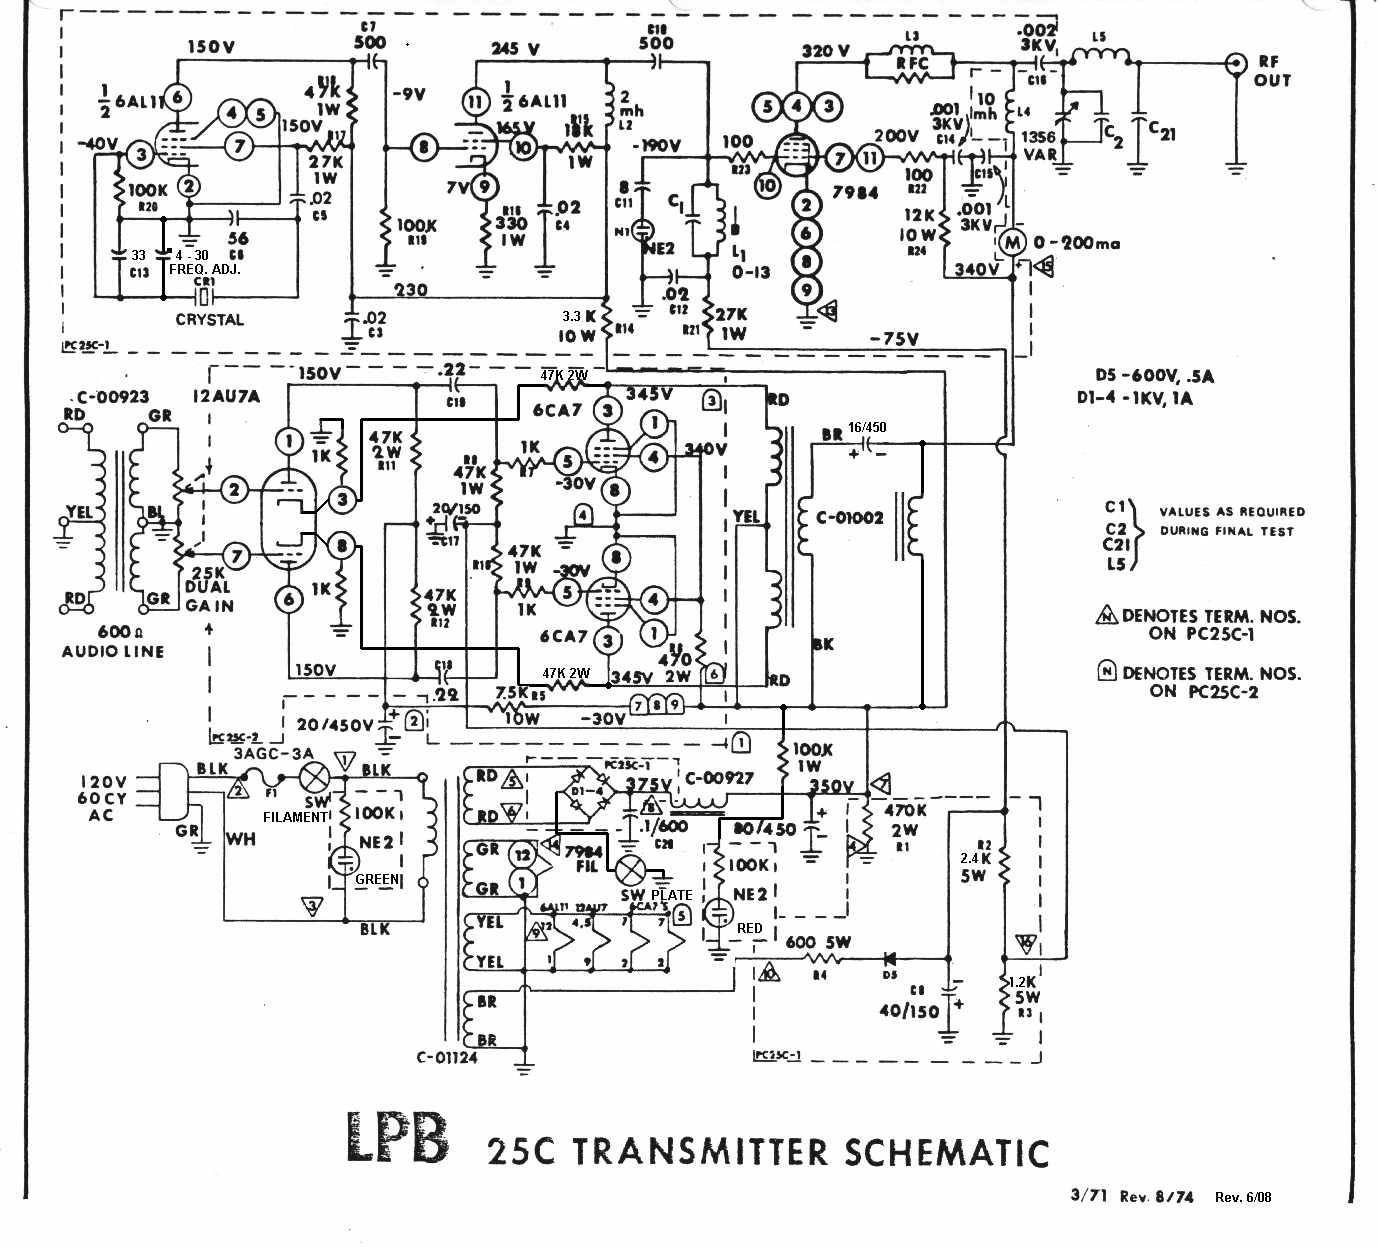 Opamp Vhf Fm Transmitter Circuit Diagram Flotsam Documents Articles Schematics And Manuals Lpb Model 25b Am Image Of Schematic